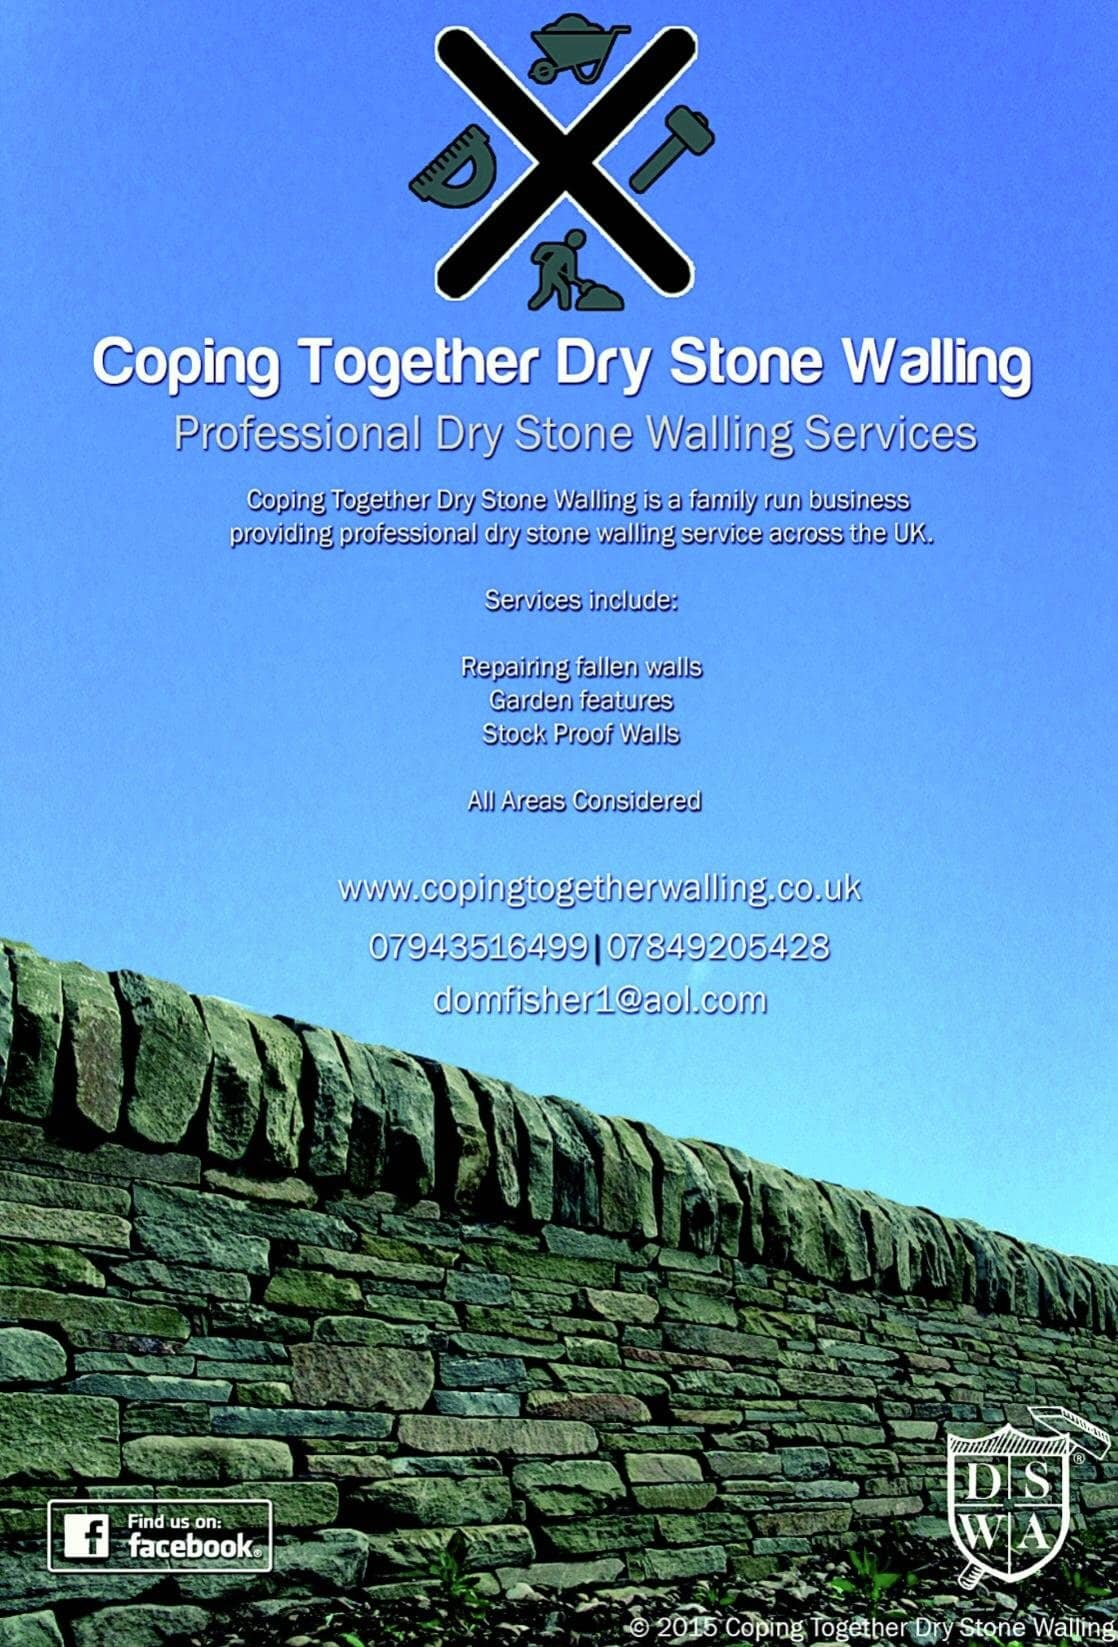 Coping Together - Professional Dry Stone Wallers | 244 Brownhill Drive, Blackburn BB1 9QR | +44 7943 516499